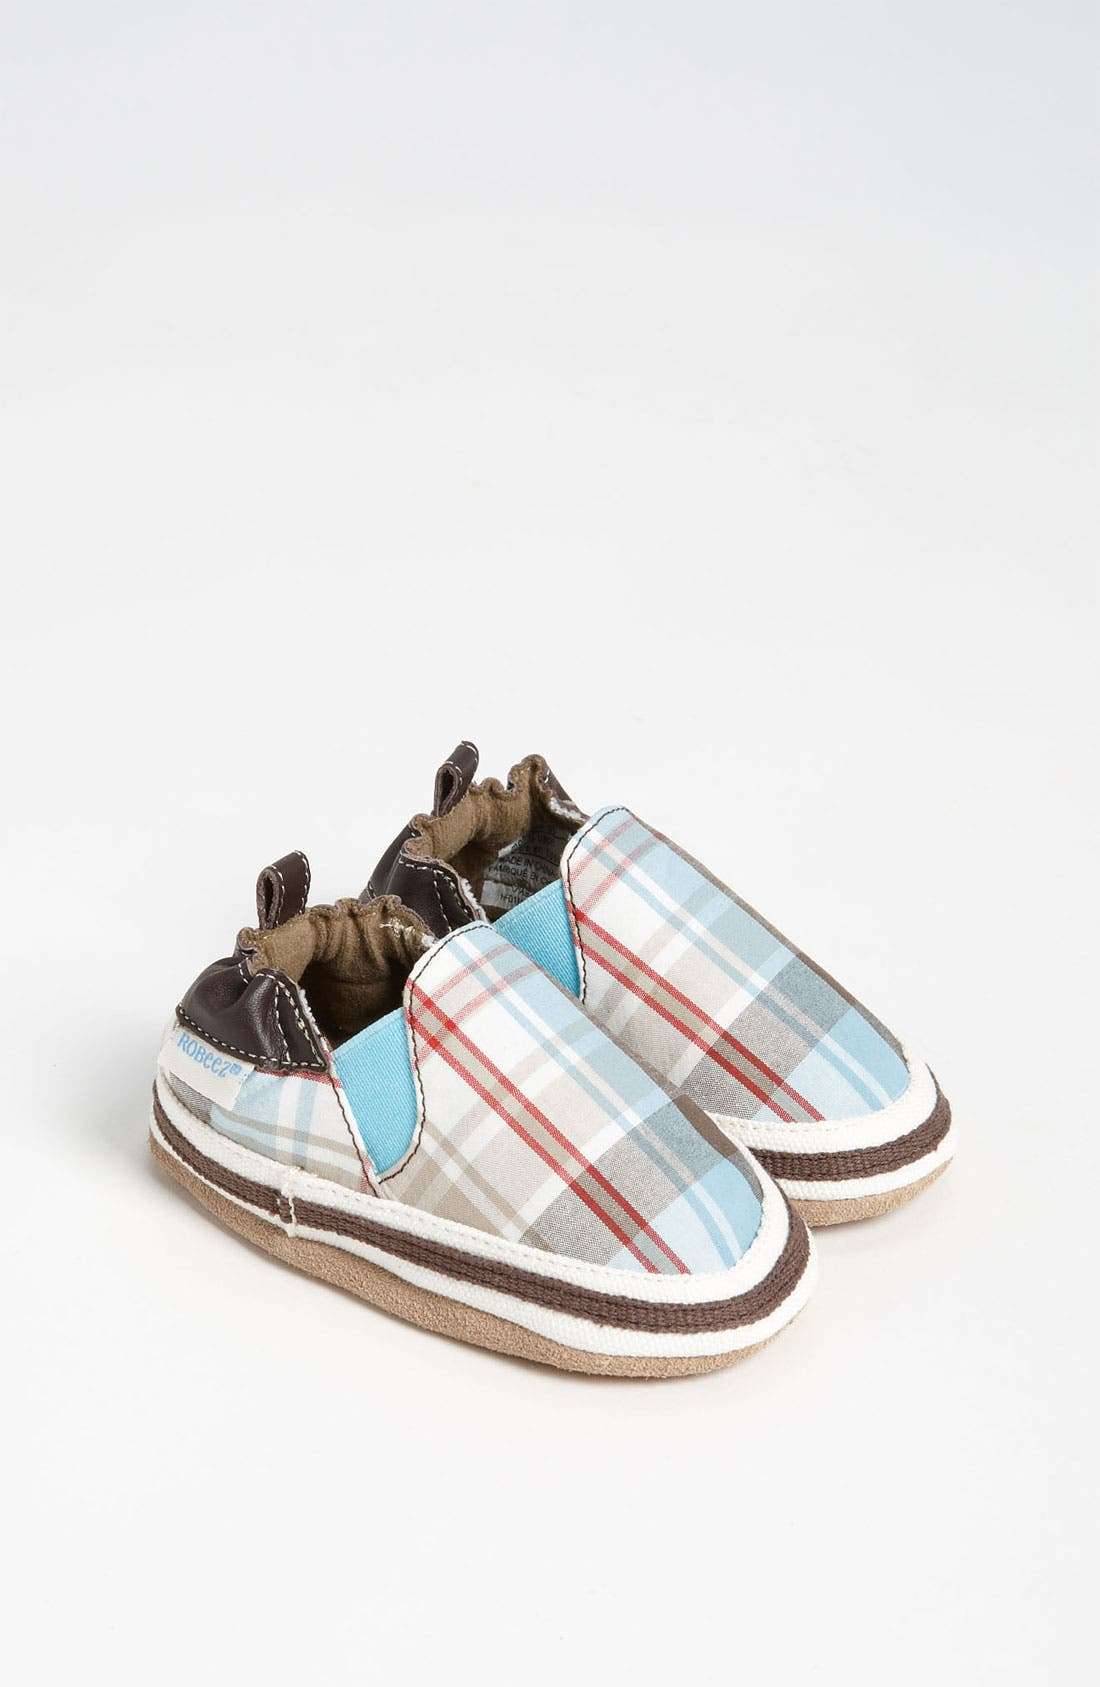 Alternate Image 1 Selected - Robeez® 'Day Out' Crib Shoe (Baby & Walker)